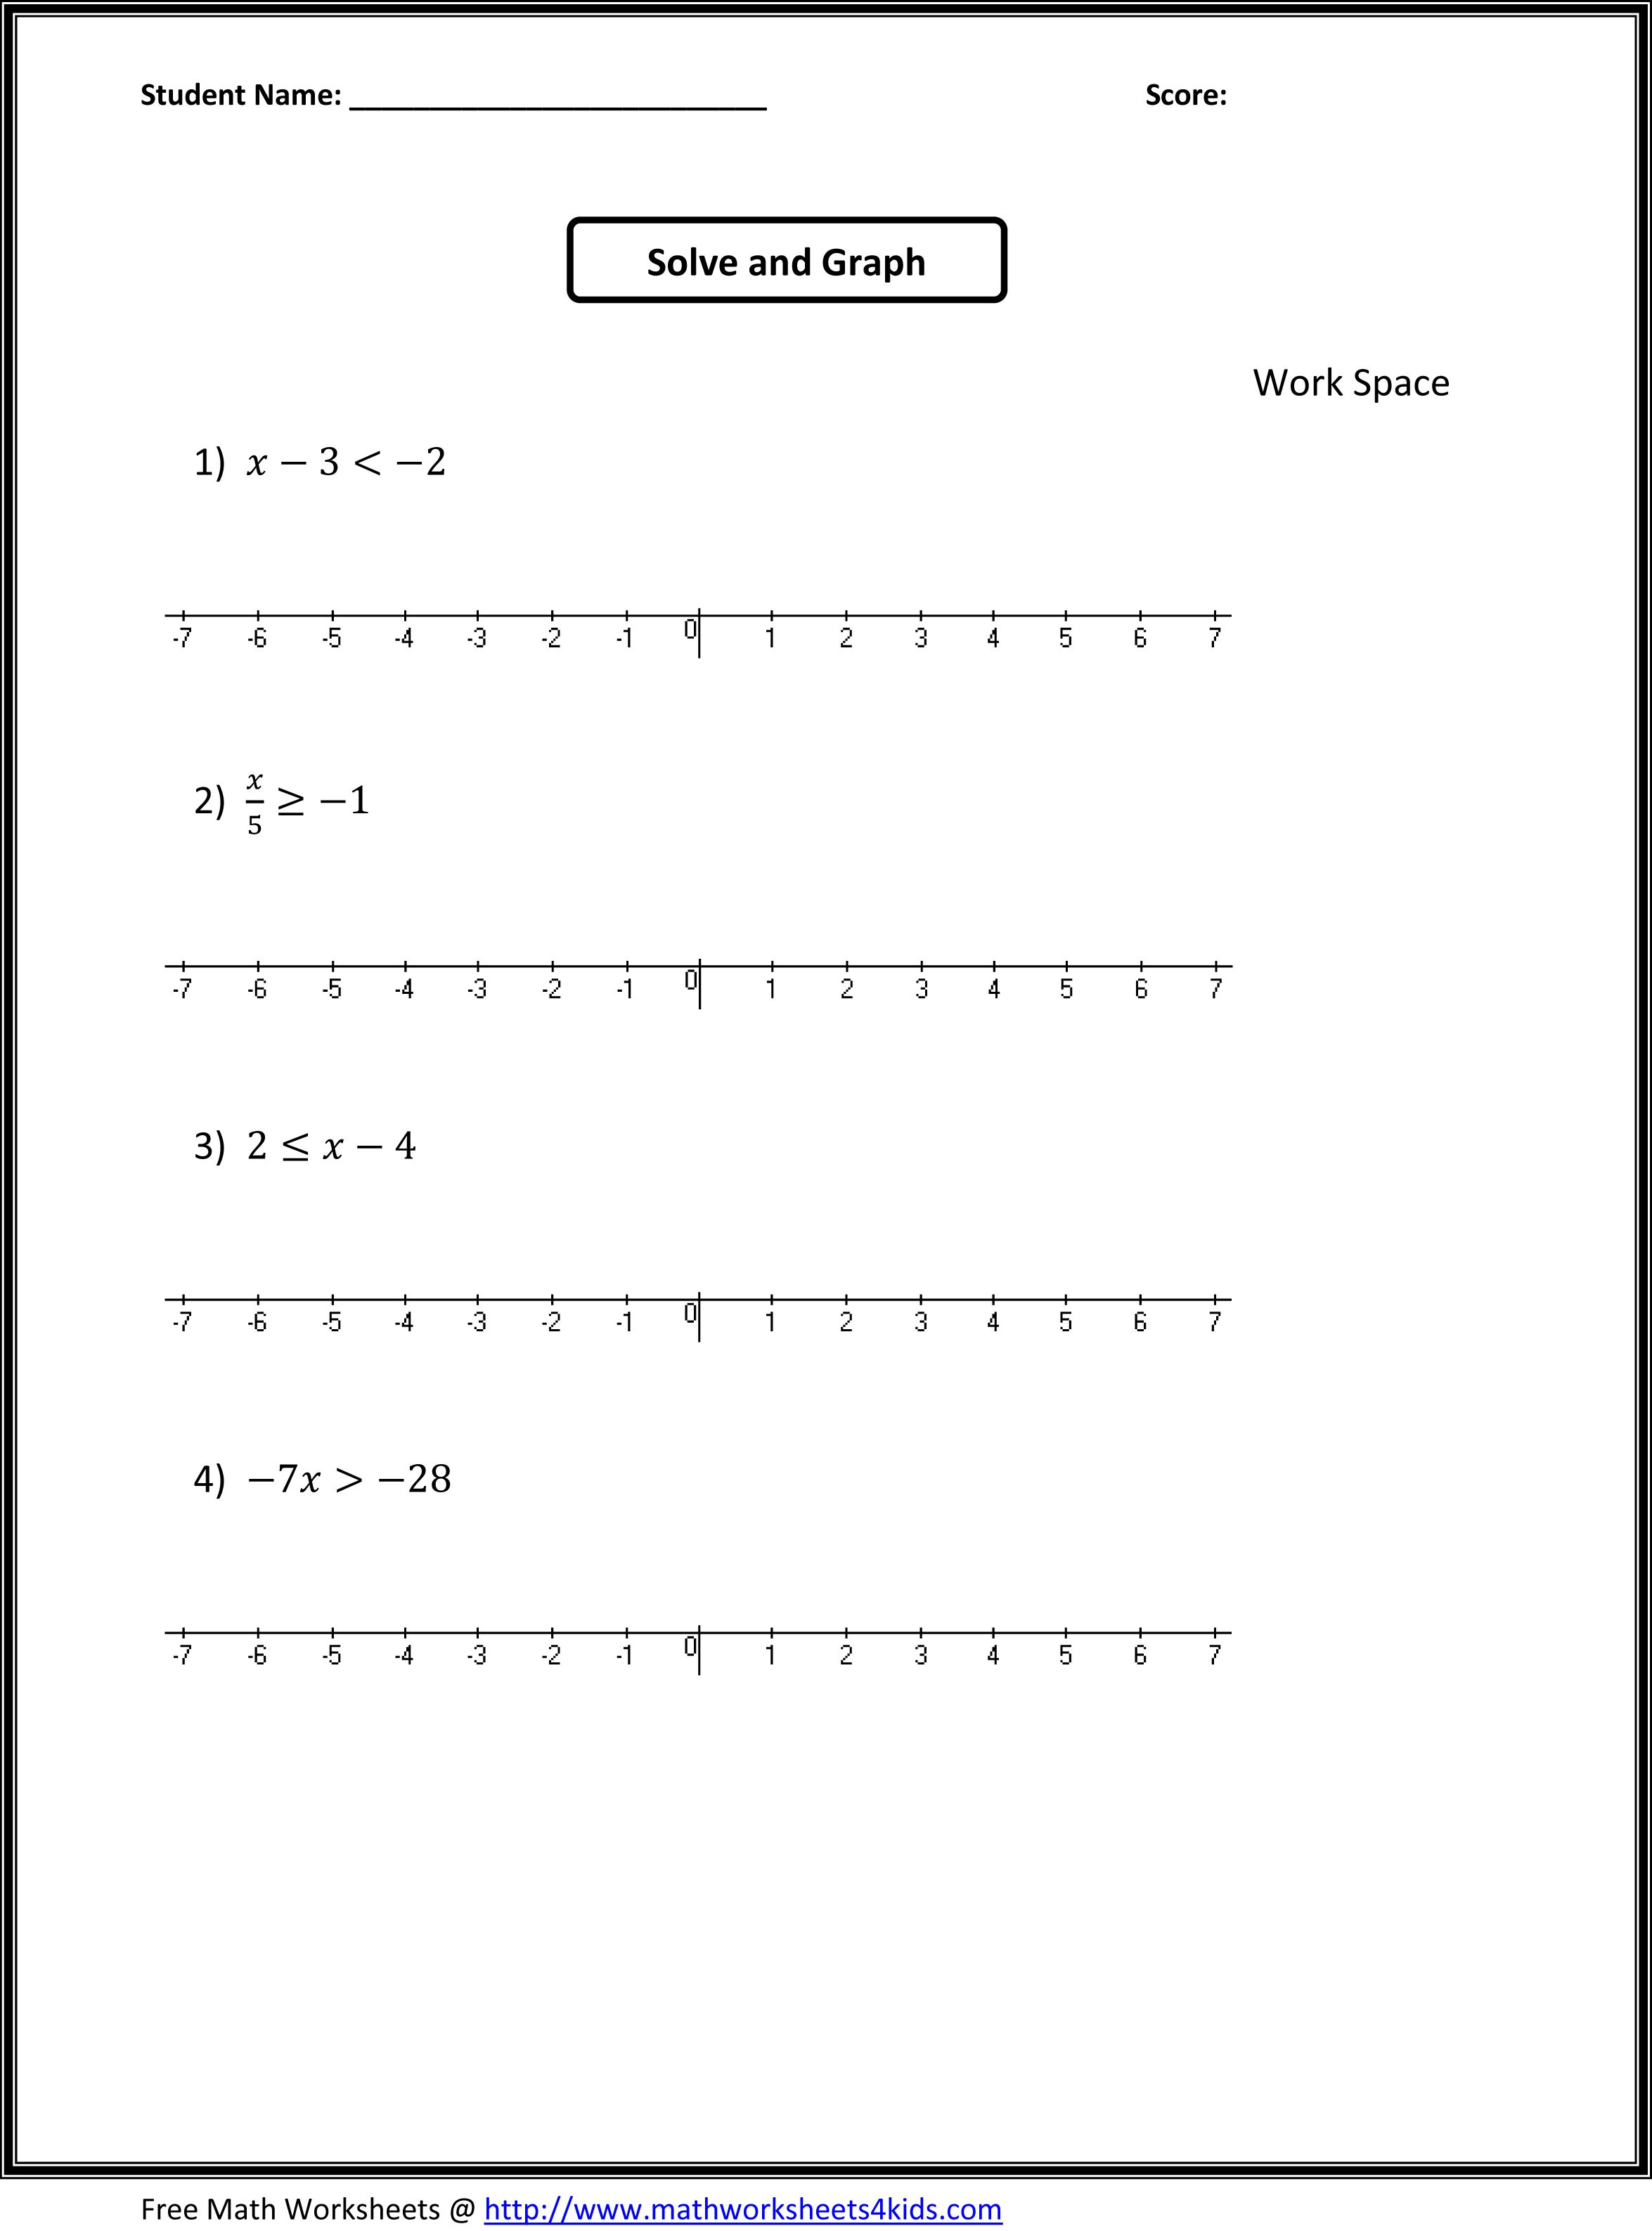 Worksheets Math For 7th Graders Worksheets 7th grade algebra worksheets math places worksheets